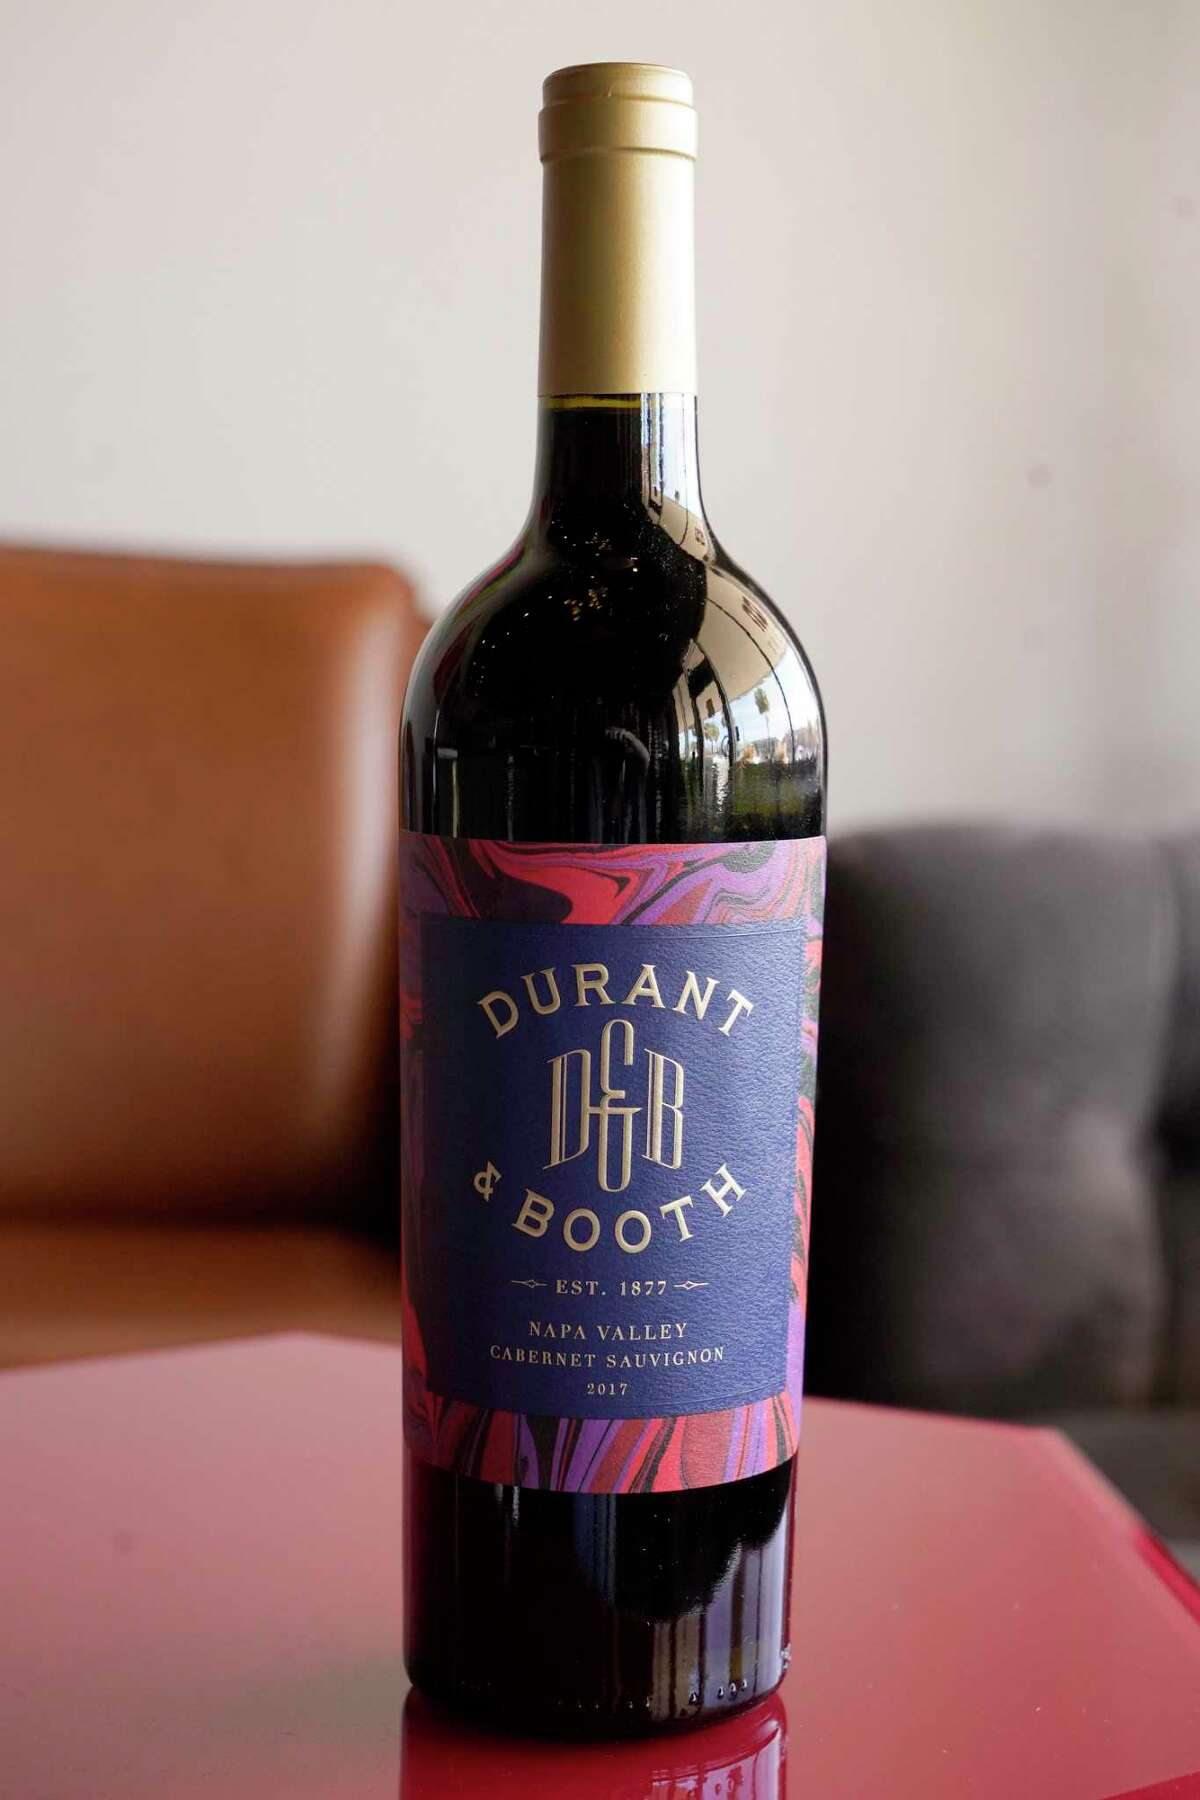 2017 Durant & Booth Cabernet Napa Valley